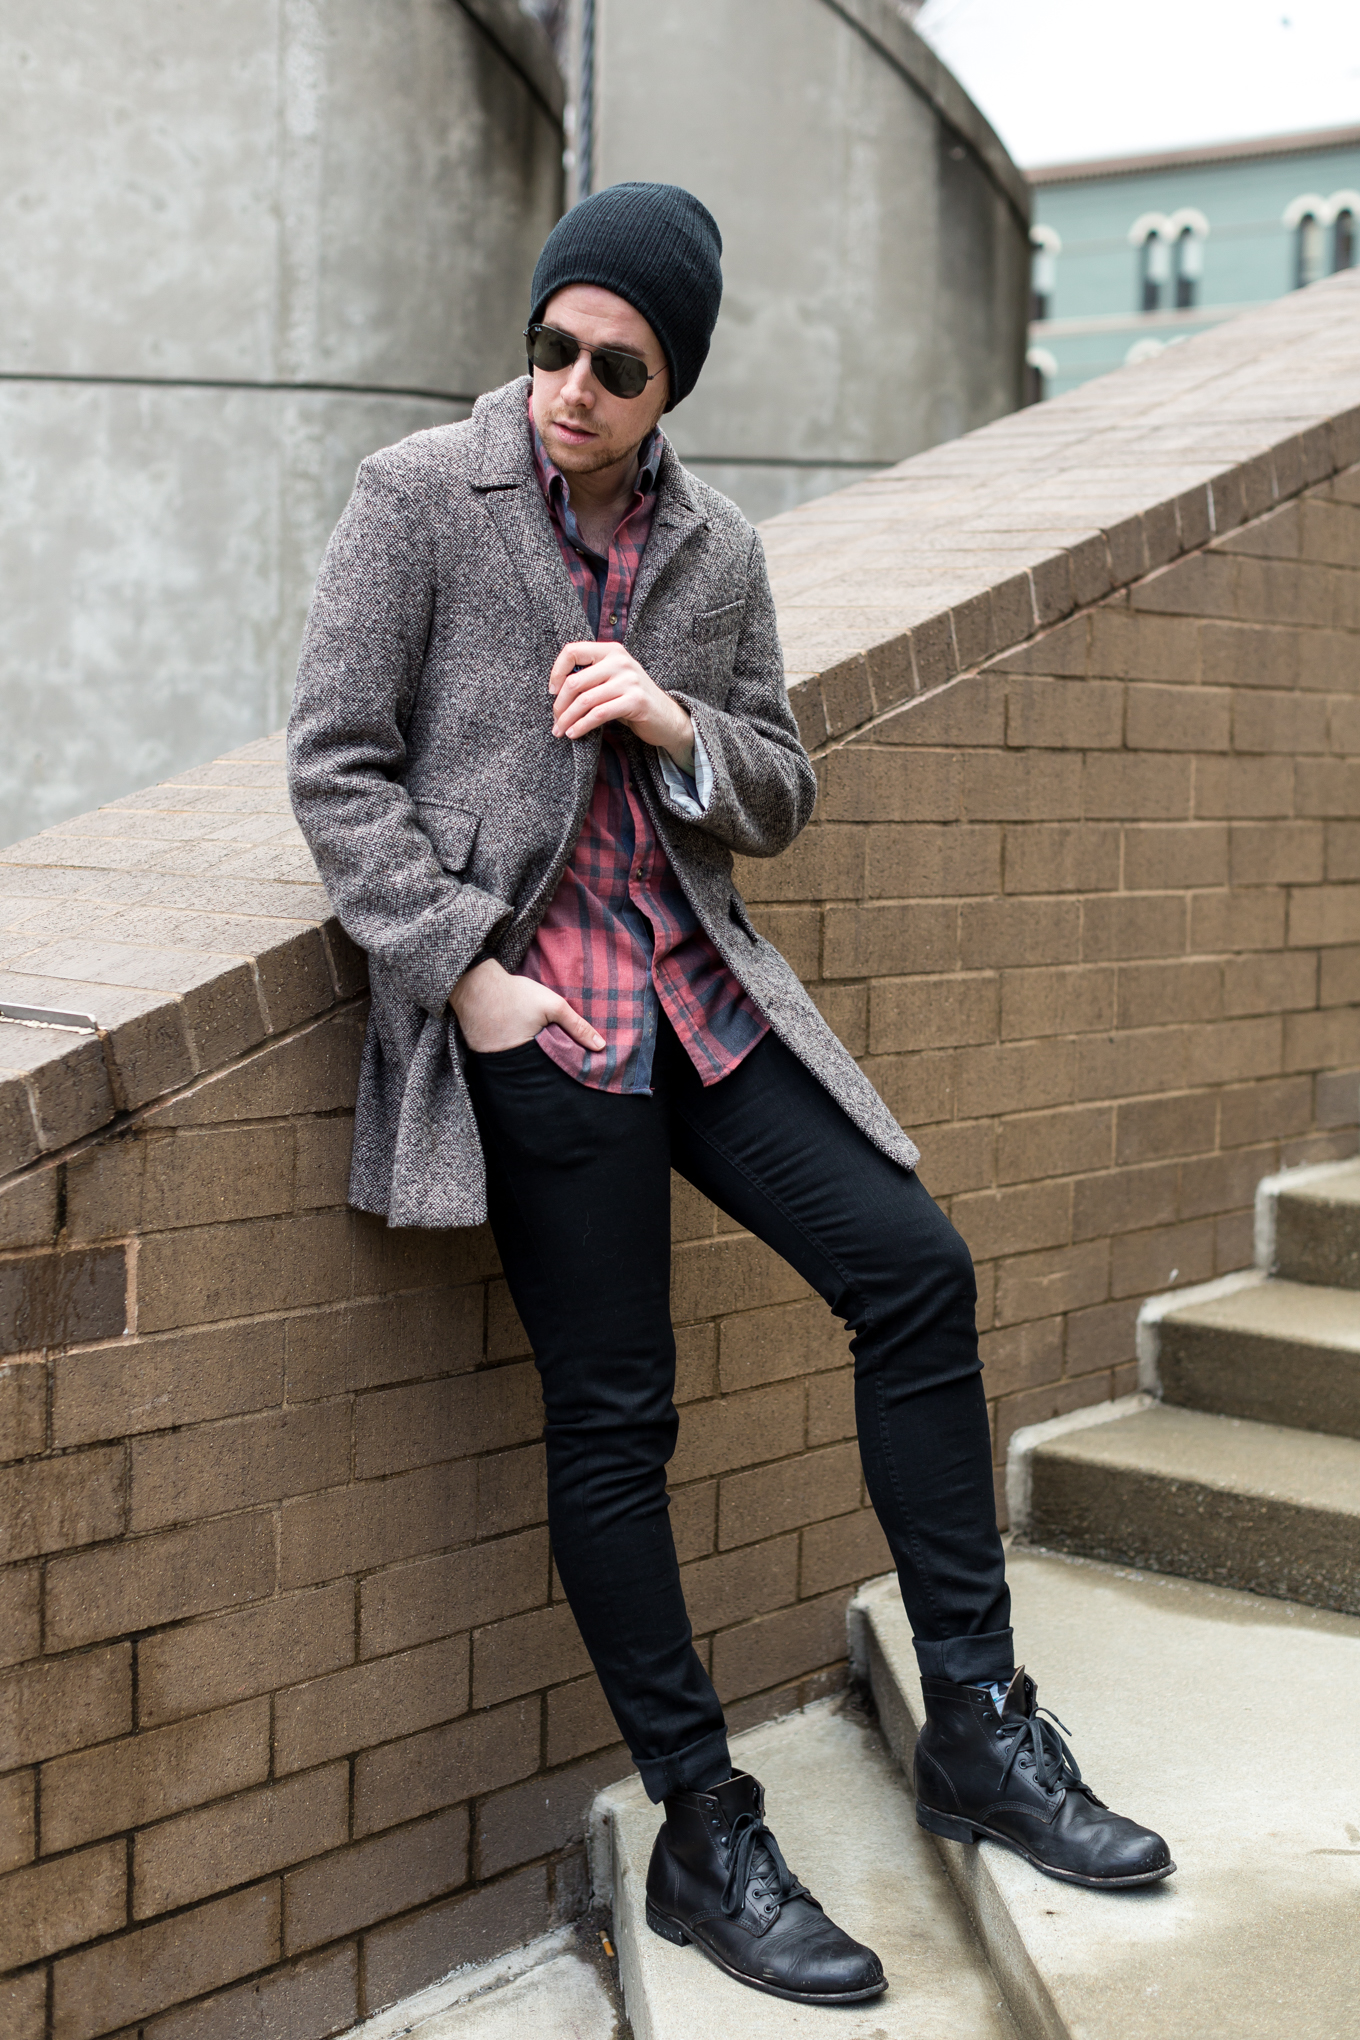 billy reid, southern mens fashion, mens fashion blog, southern living bloggers to follow, bloggers to follow